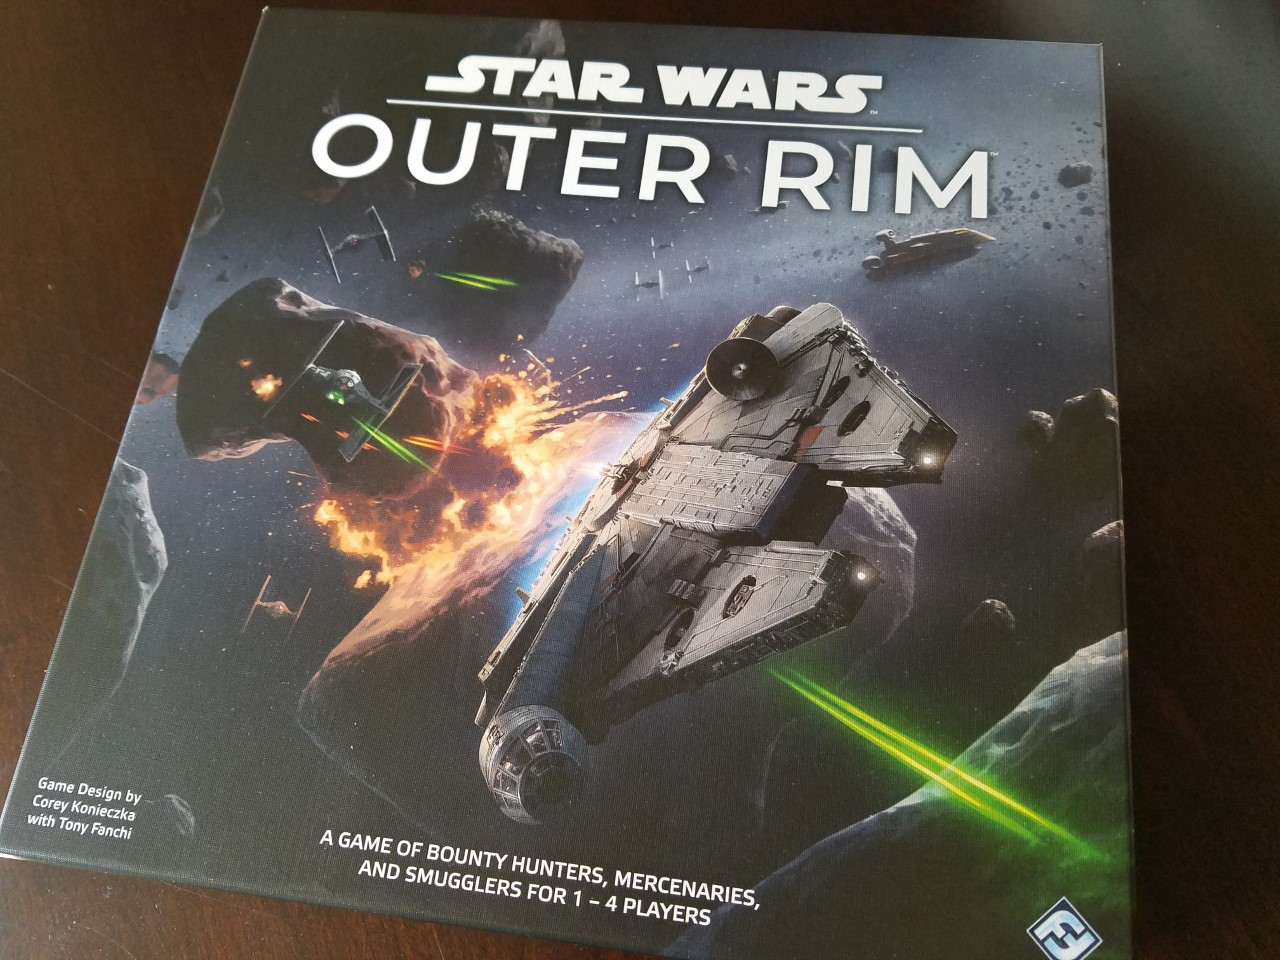 Star Wars: Outer Rim review—Piloting as Han or Boba Fett could use on star wars themed personal checks, star wars galaxy stars, star wars the old republic youtube, star wars the old republic revan mask, star wars the force awakens, star wars planets and moons, star wars galaxies, star wars edge of the empire maps, star wars battle maps, star wars galaxy at war, star fleet universe map, star wars tie fighter, star wars in a galaxy far, star wars the ultimate visual guide, star wars empire vs republic, star wars all planets, star wars the force unleashed, star wars ship database, star wars rpg maps, star wars essential atlas maps,